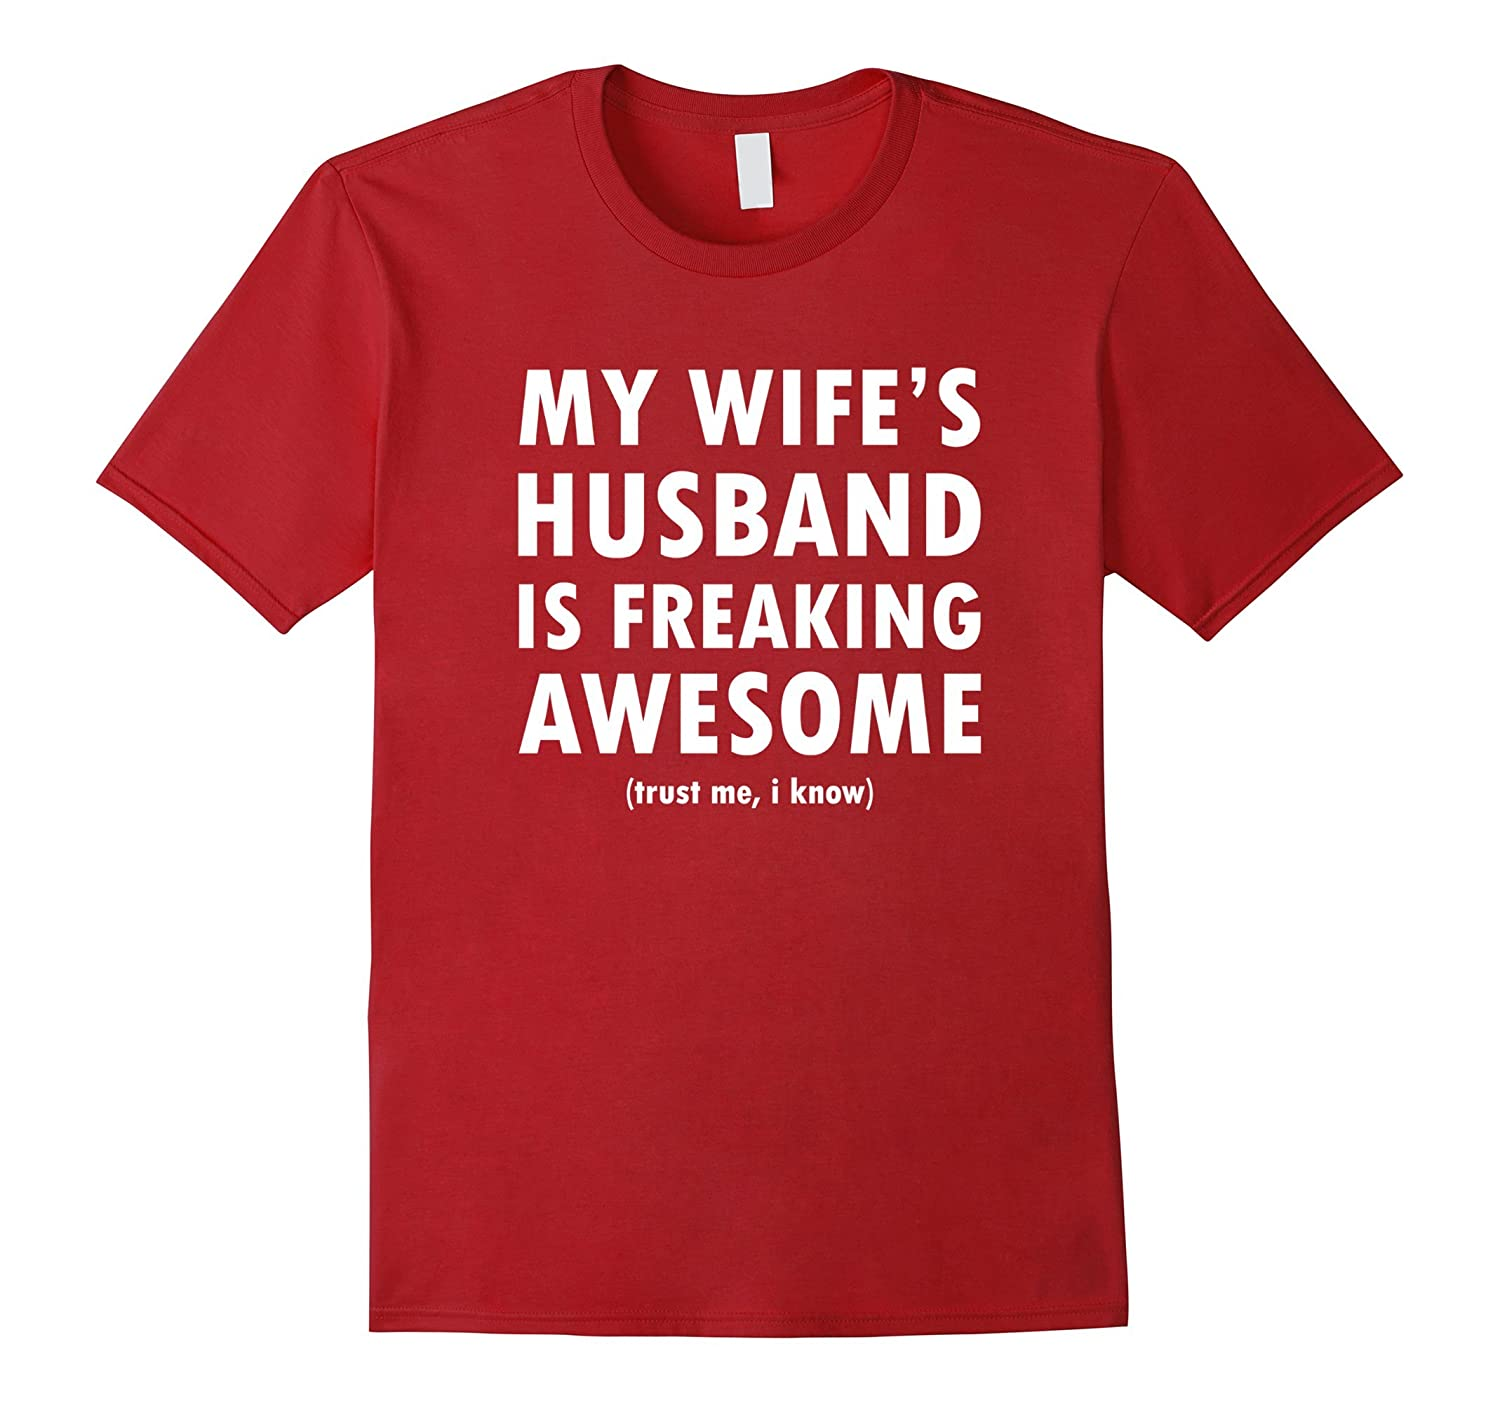 a9d2b5a1 My Wifes Husband is Freaking Awesome – Funny T-Shirt-TD – Teedep